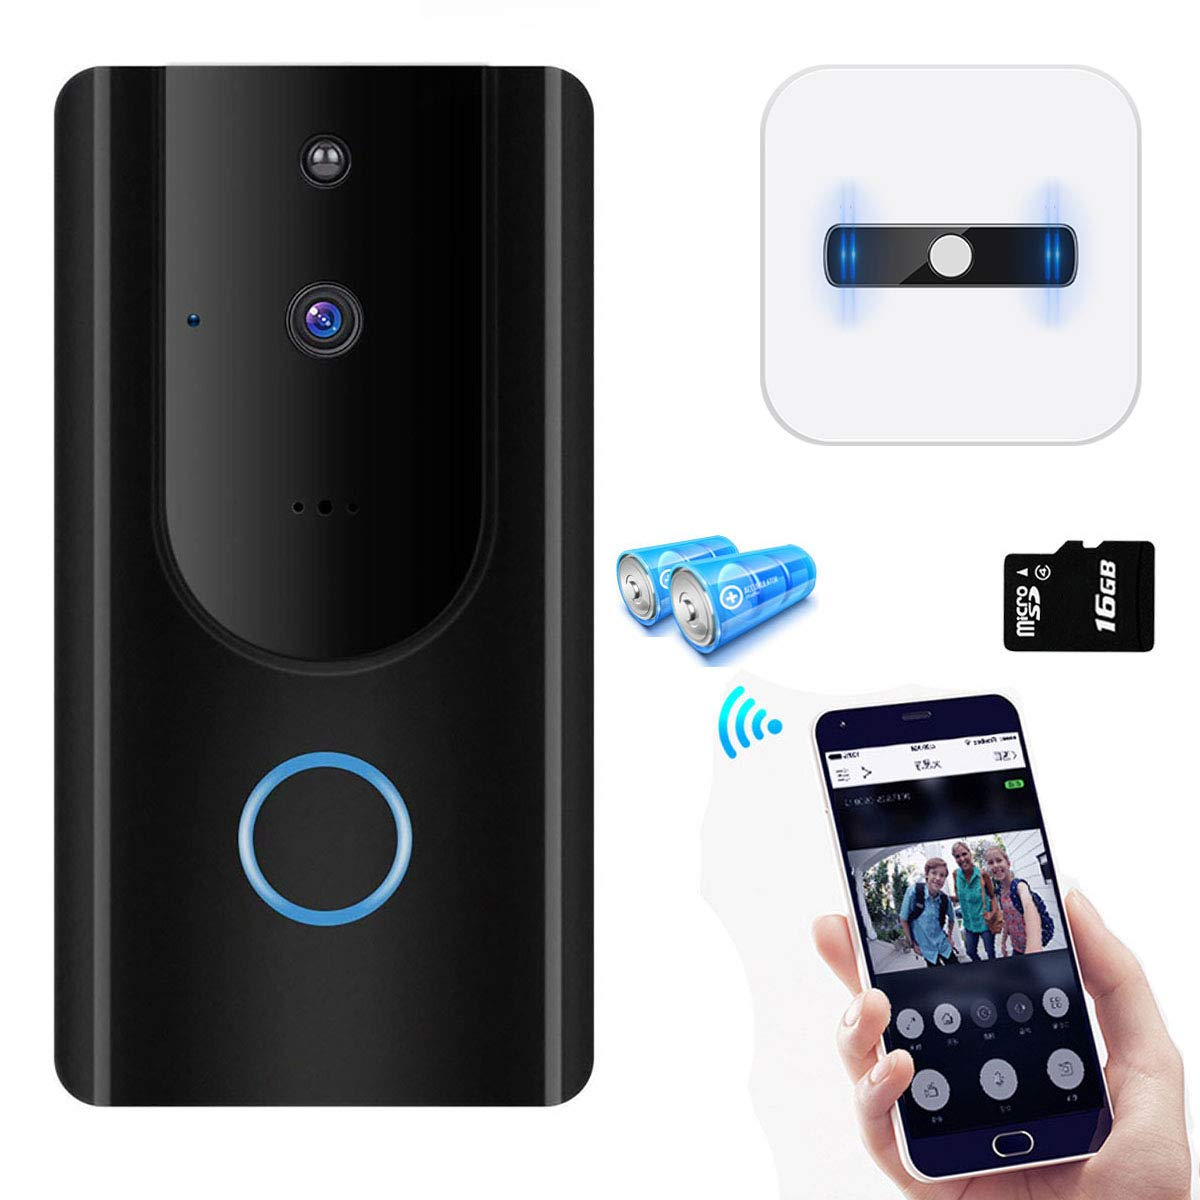 Video Doorbell,Visual Doorbell Camera 720P HD Wifi Security Camera with 16G TF Card, Chime and Battery,Real-Time Two-Way Talk, Night Vision,PIR Motion Detection,App Compatible for iPhone and Android